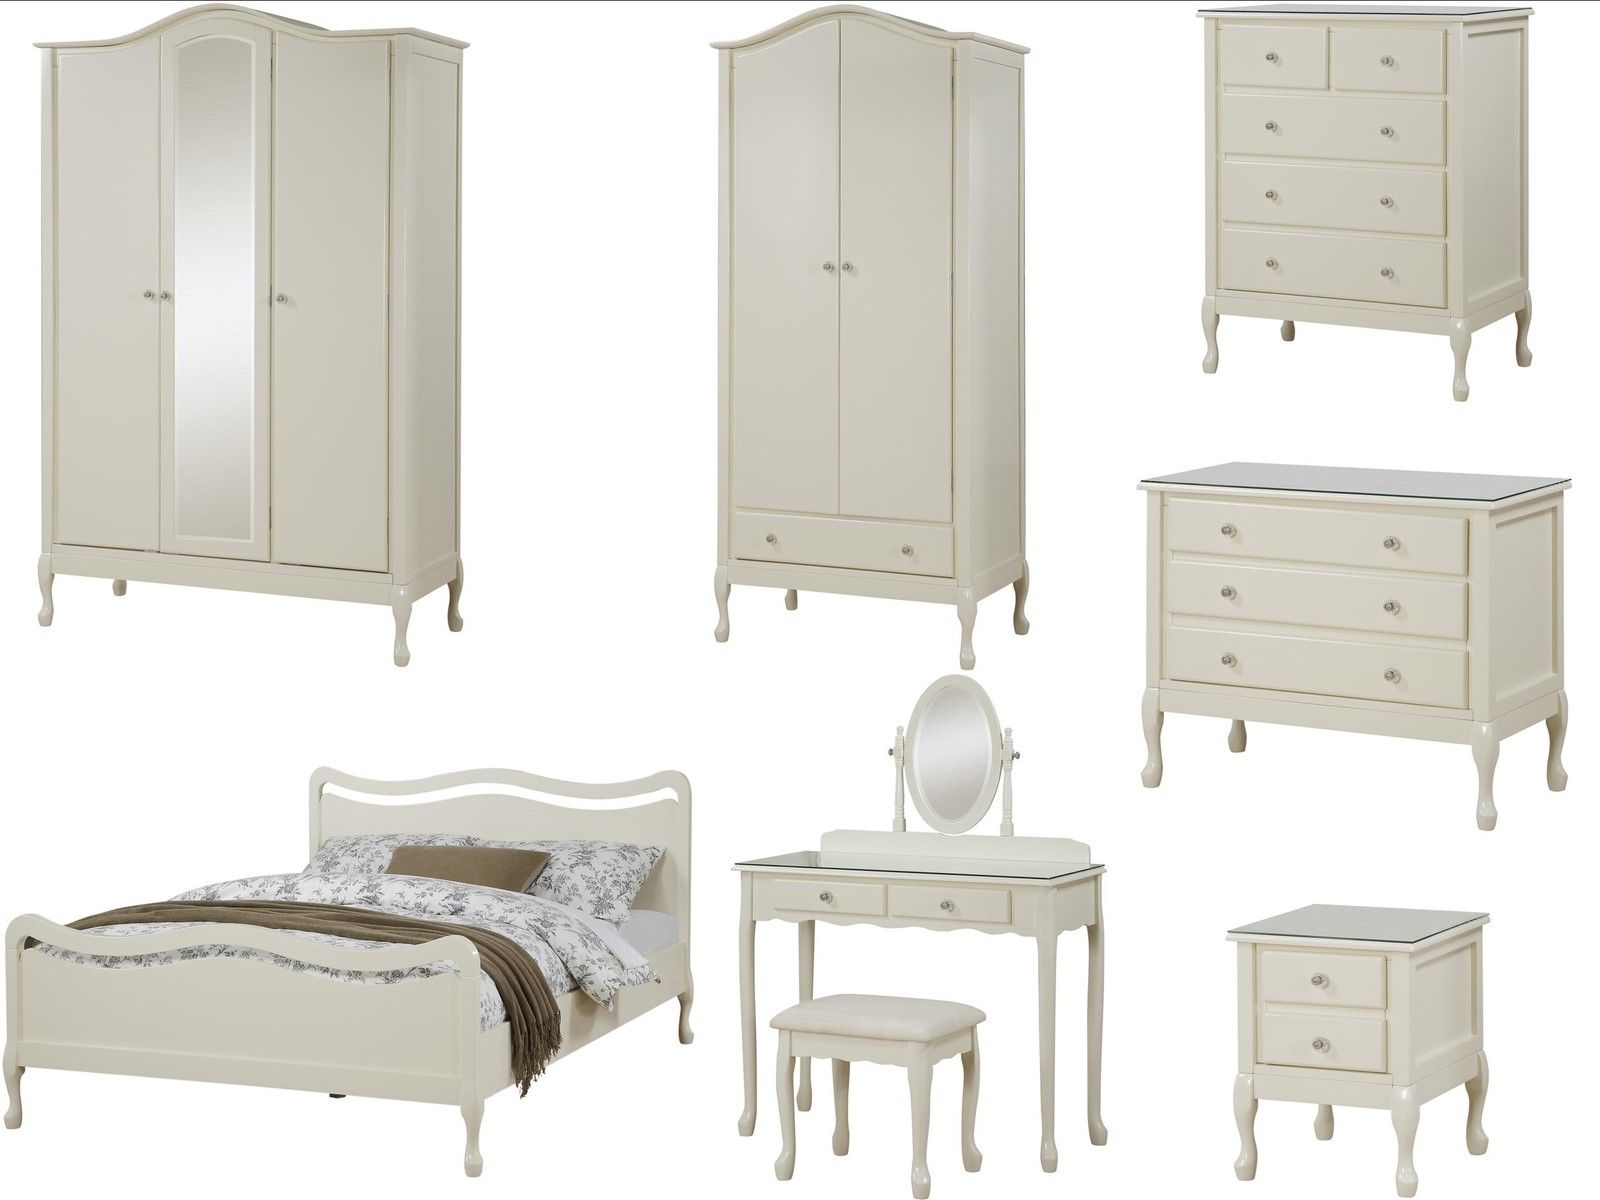 Loire shabby chic ivory bedroom furniture wardrobe for Vintage bedroom furniture